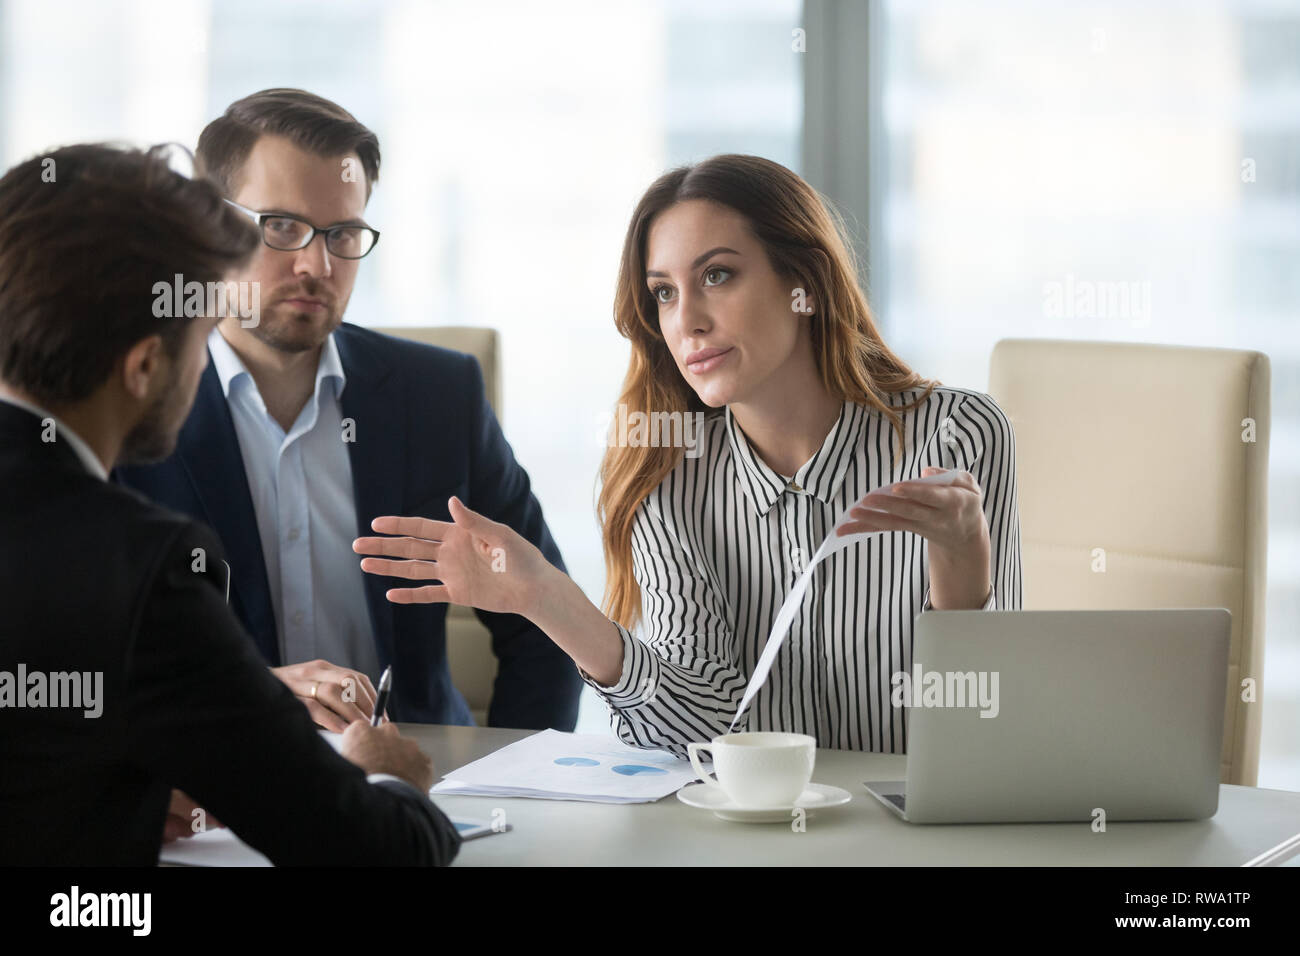 Dissatisfied executive having conflict with employee about financial report mistake - Stock Image